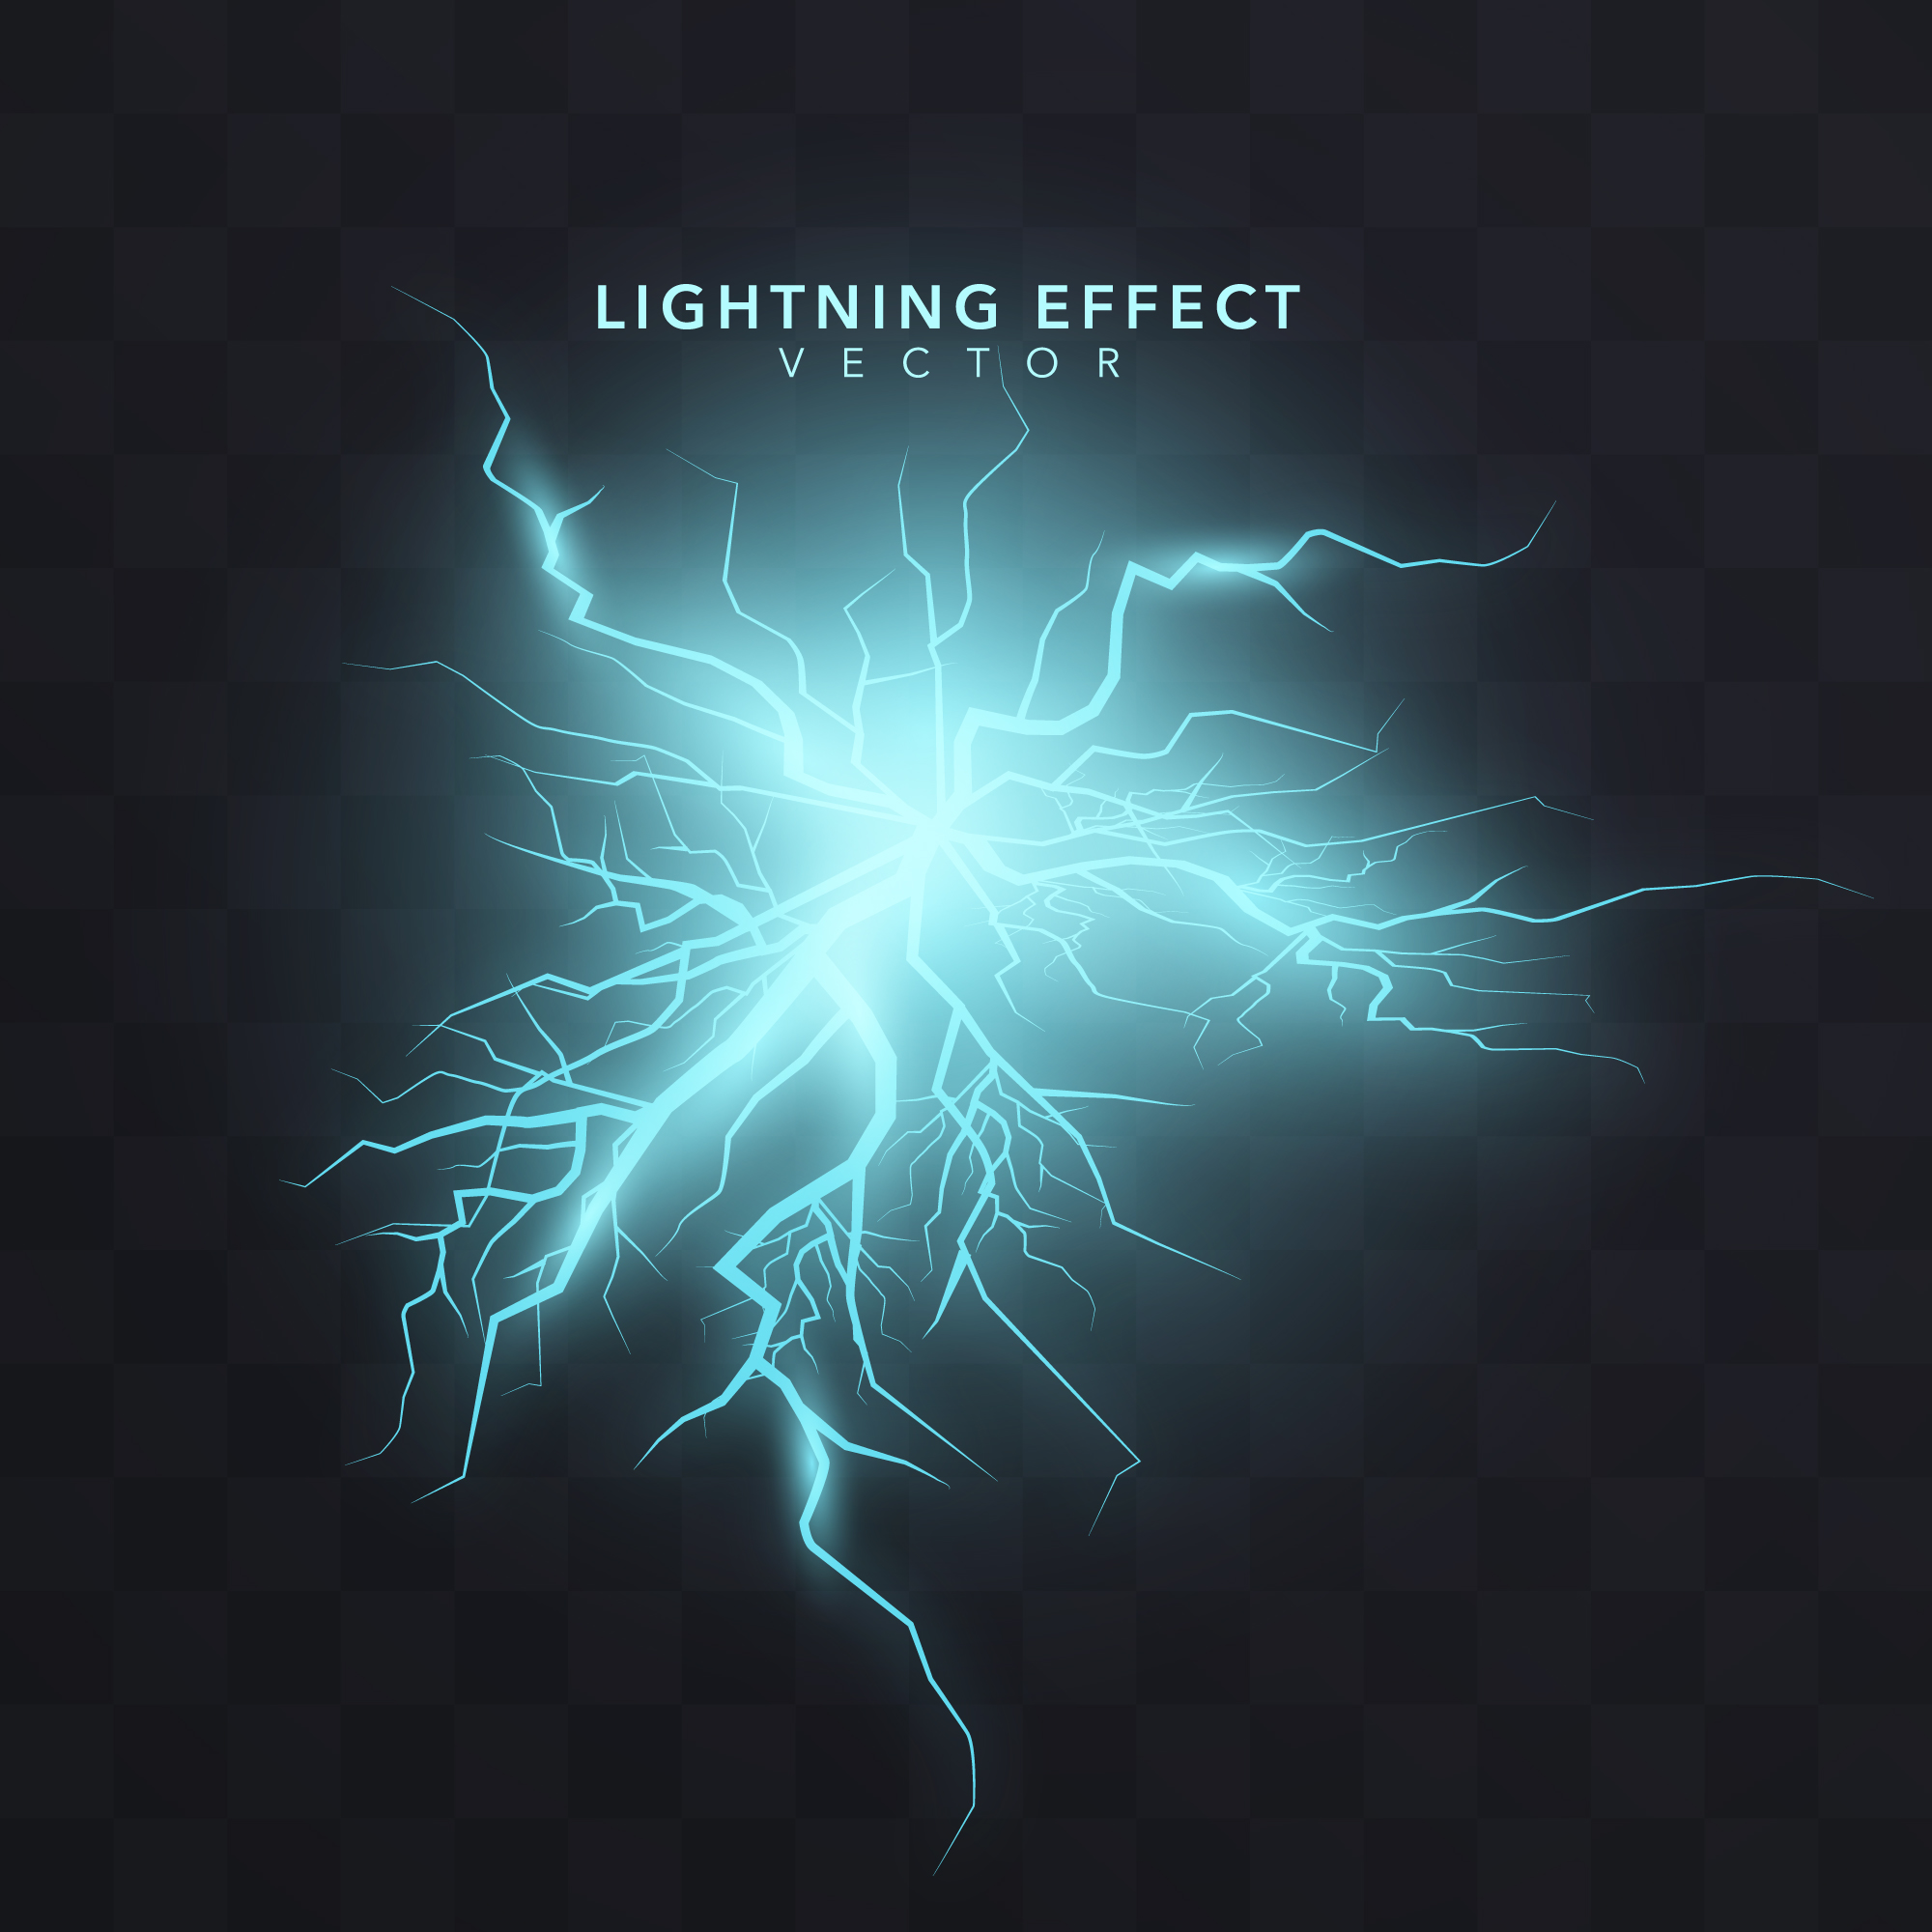 Lightning effect background